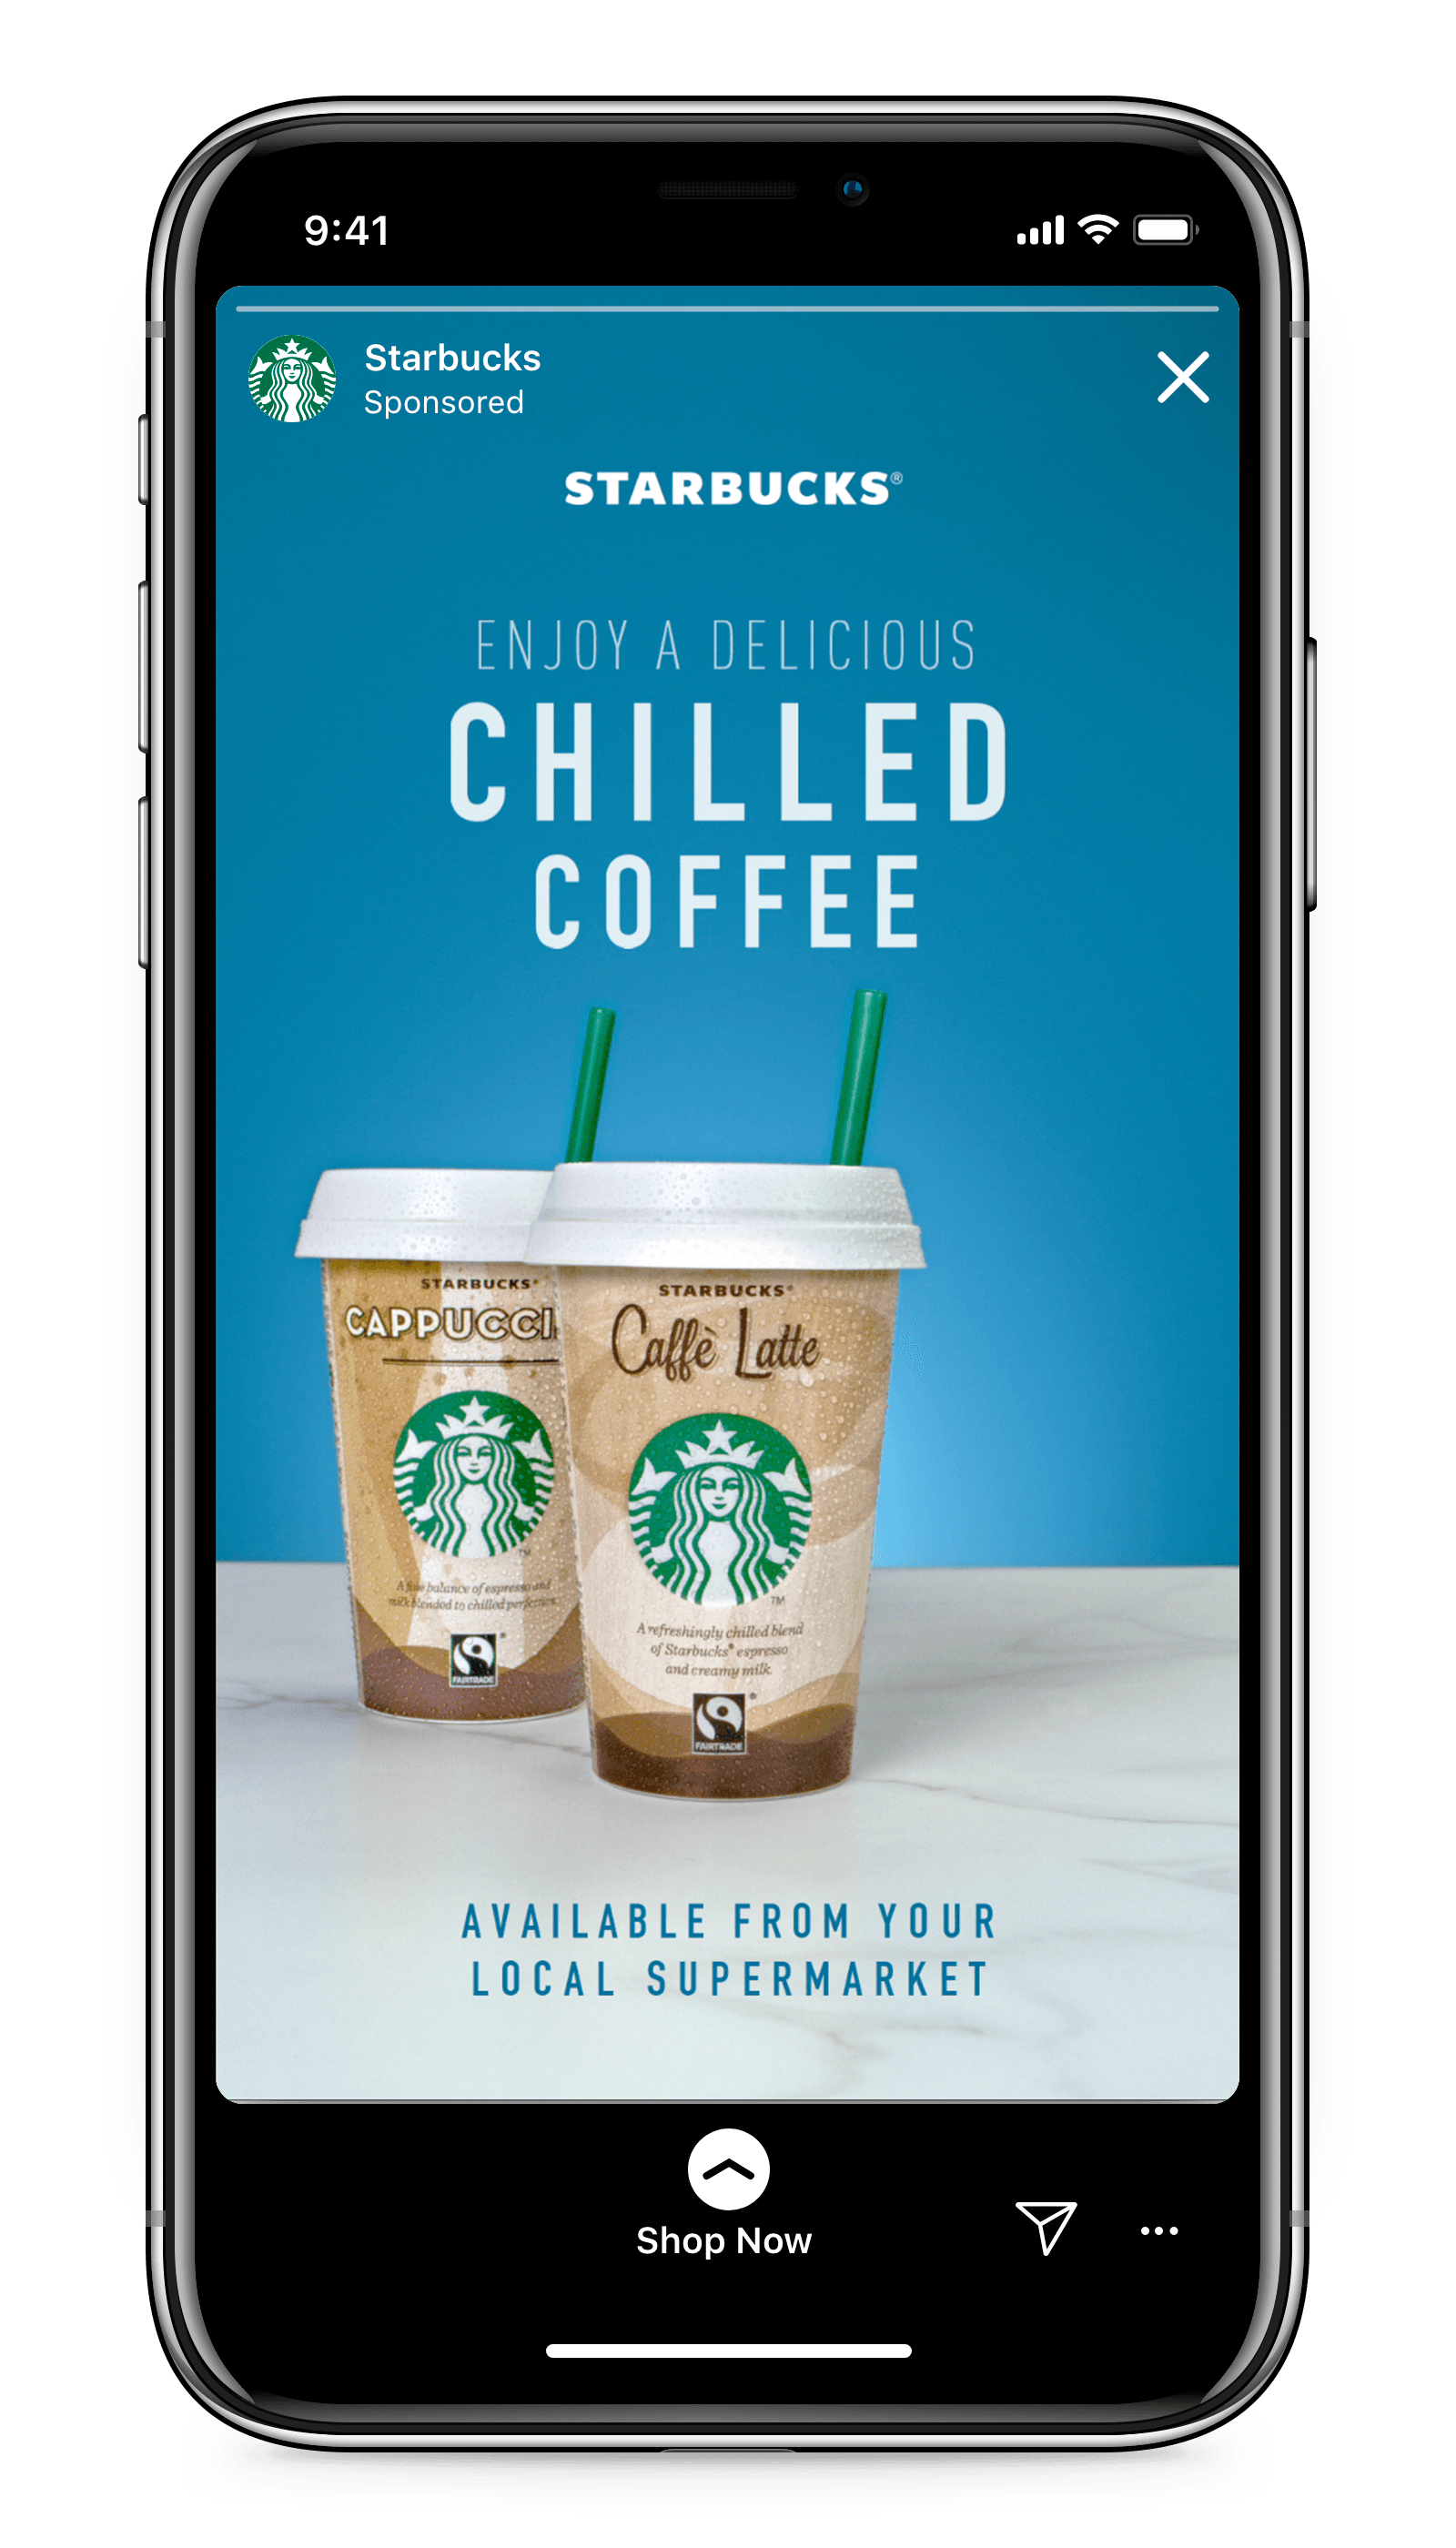 Starbucks_Chilled_Story1_small.png